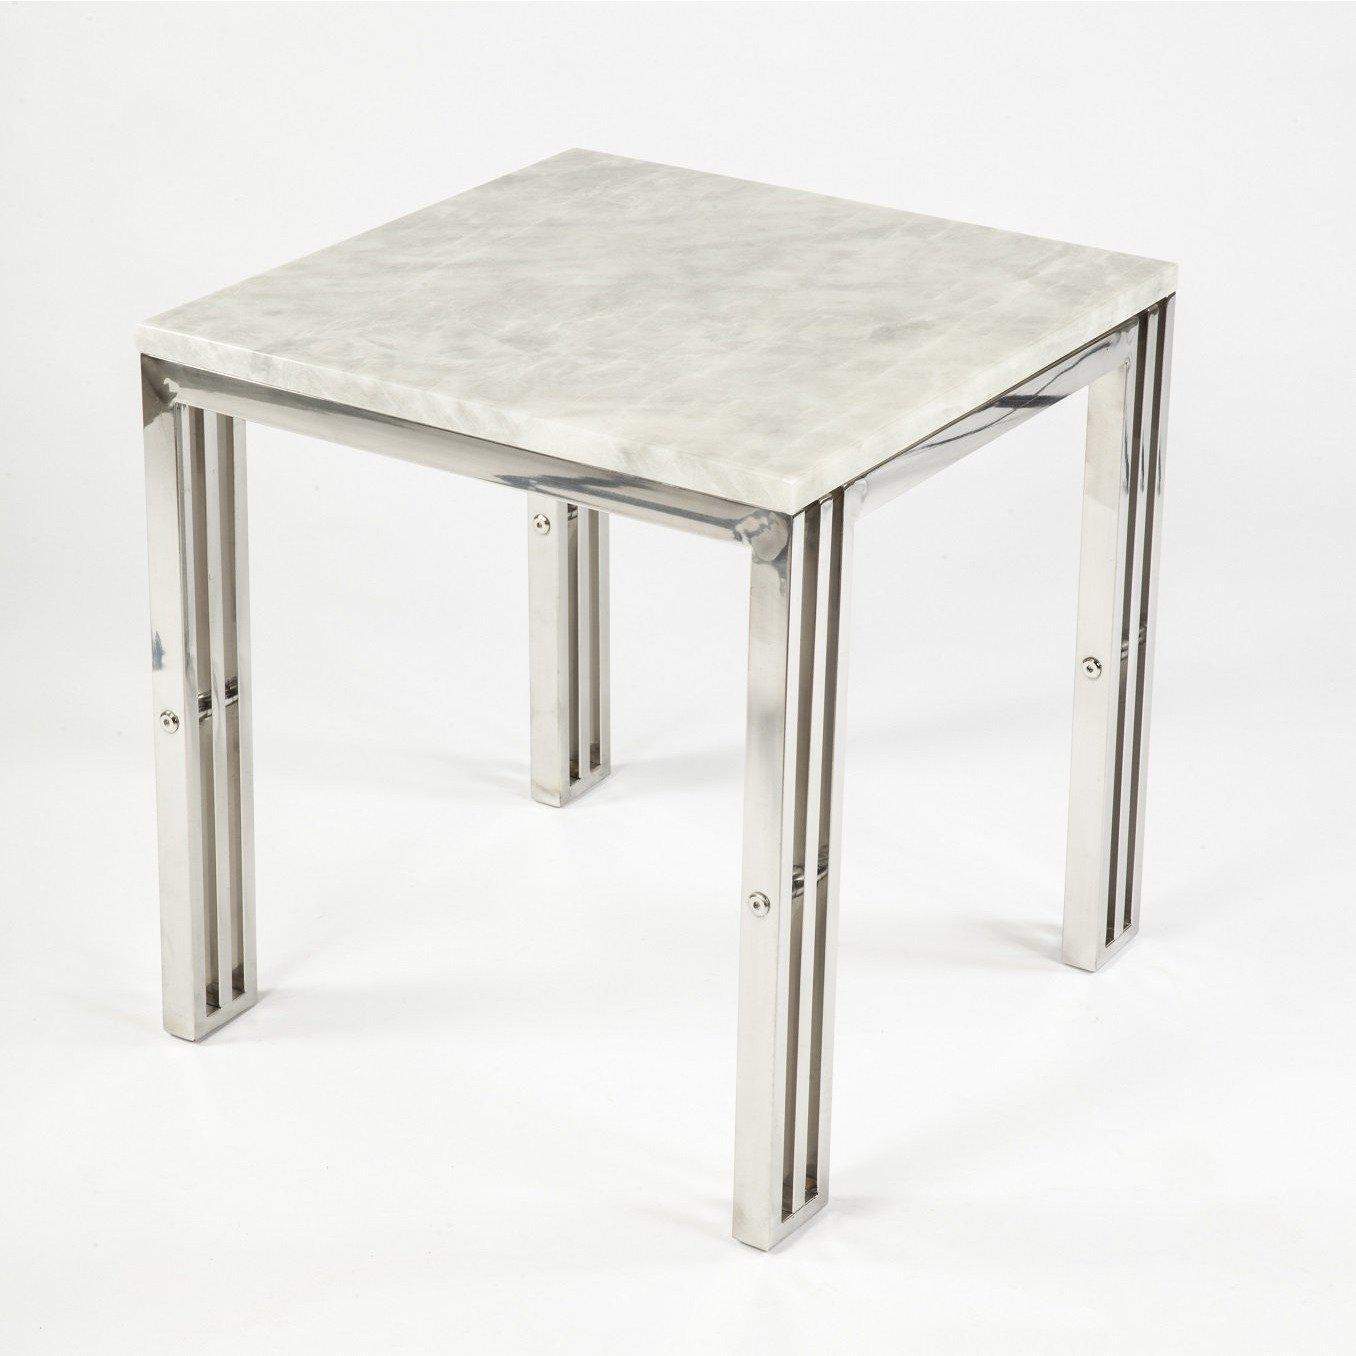 [FHT05SSMBL] End Table With Carrara Marble and Stainless Steel Frame